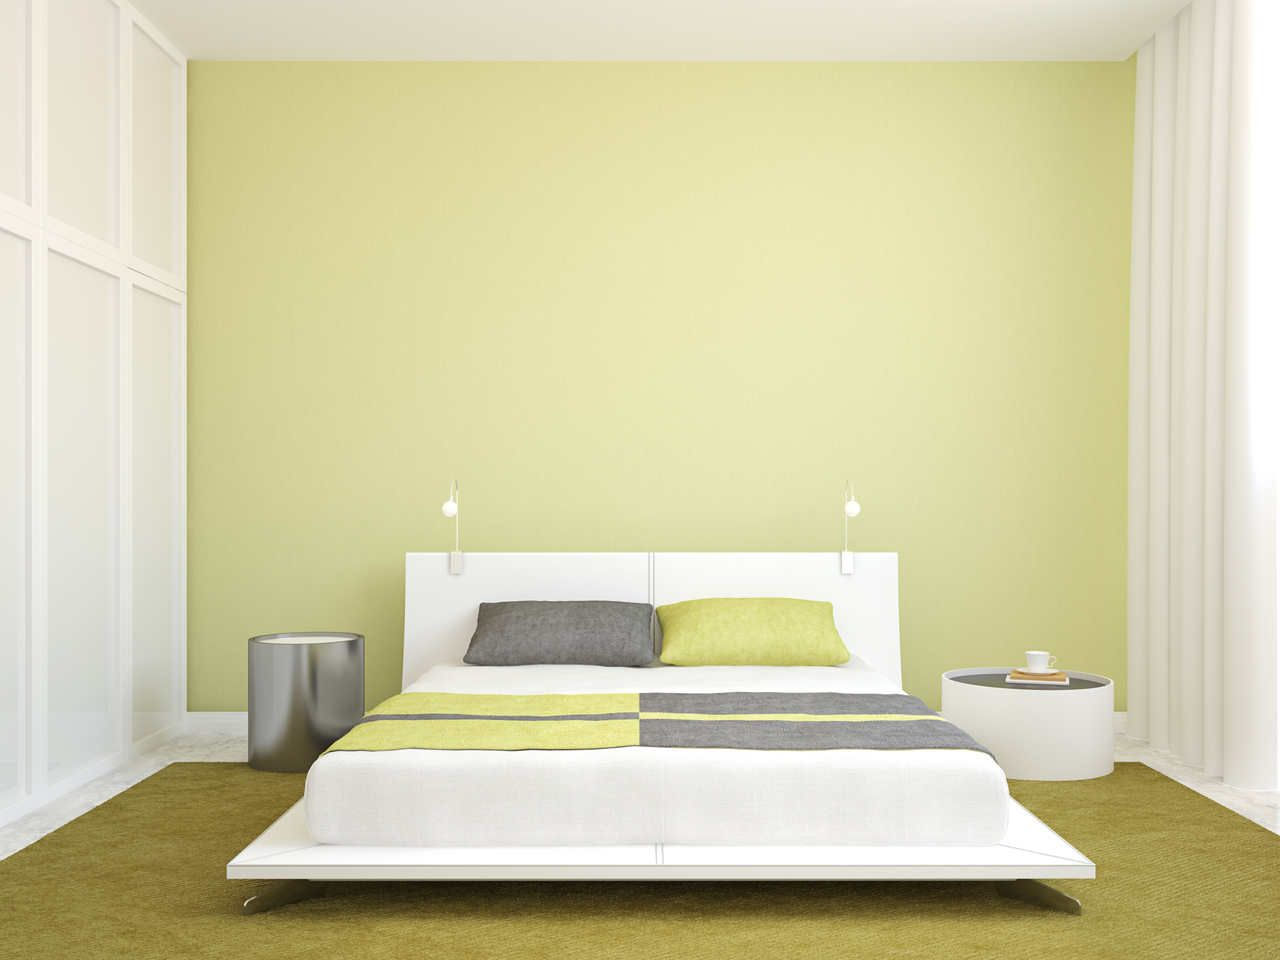 Pintar Muebles Dormitorio 7 Ways To Bliss Out Your Bedroom Murallas Pinterest